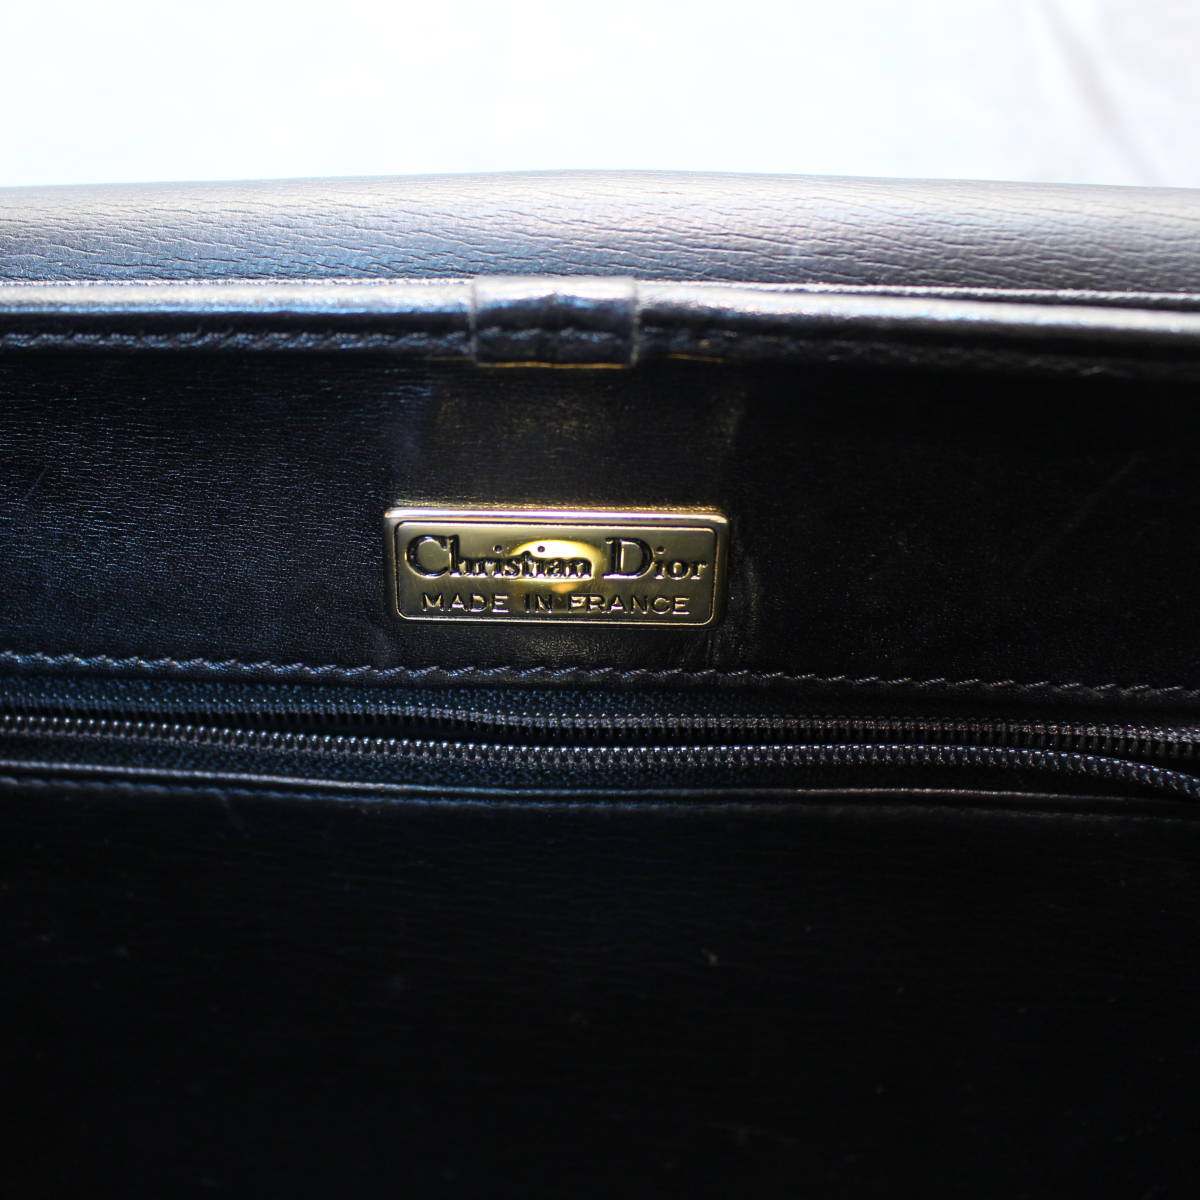 Christian Dior LEATHER SHOULDER BAG MADE IN FRANCE/クリスチャンディオールレザーショルダーバッグ_画像8